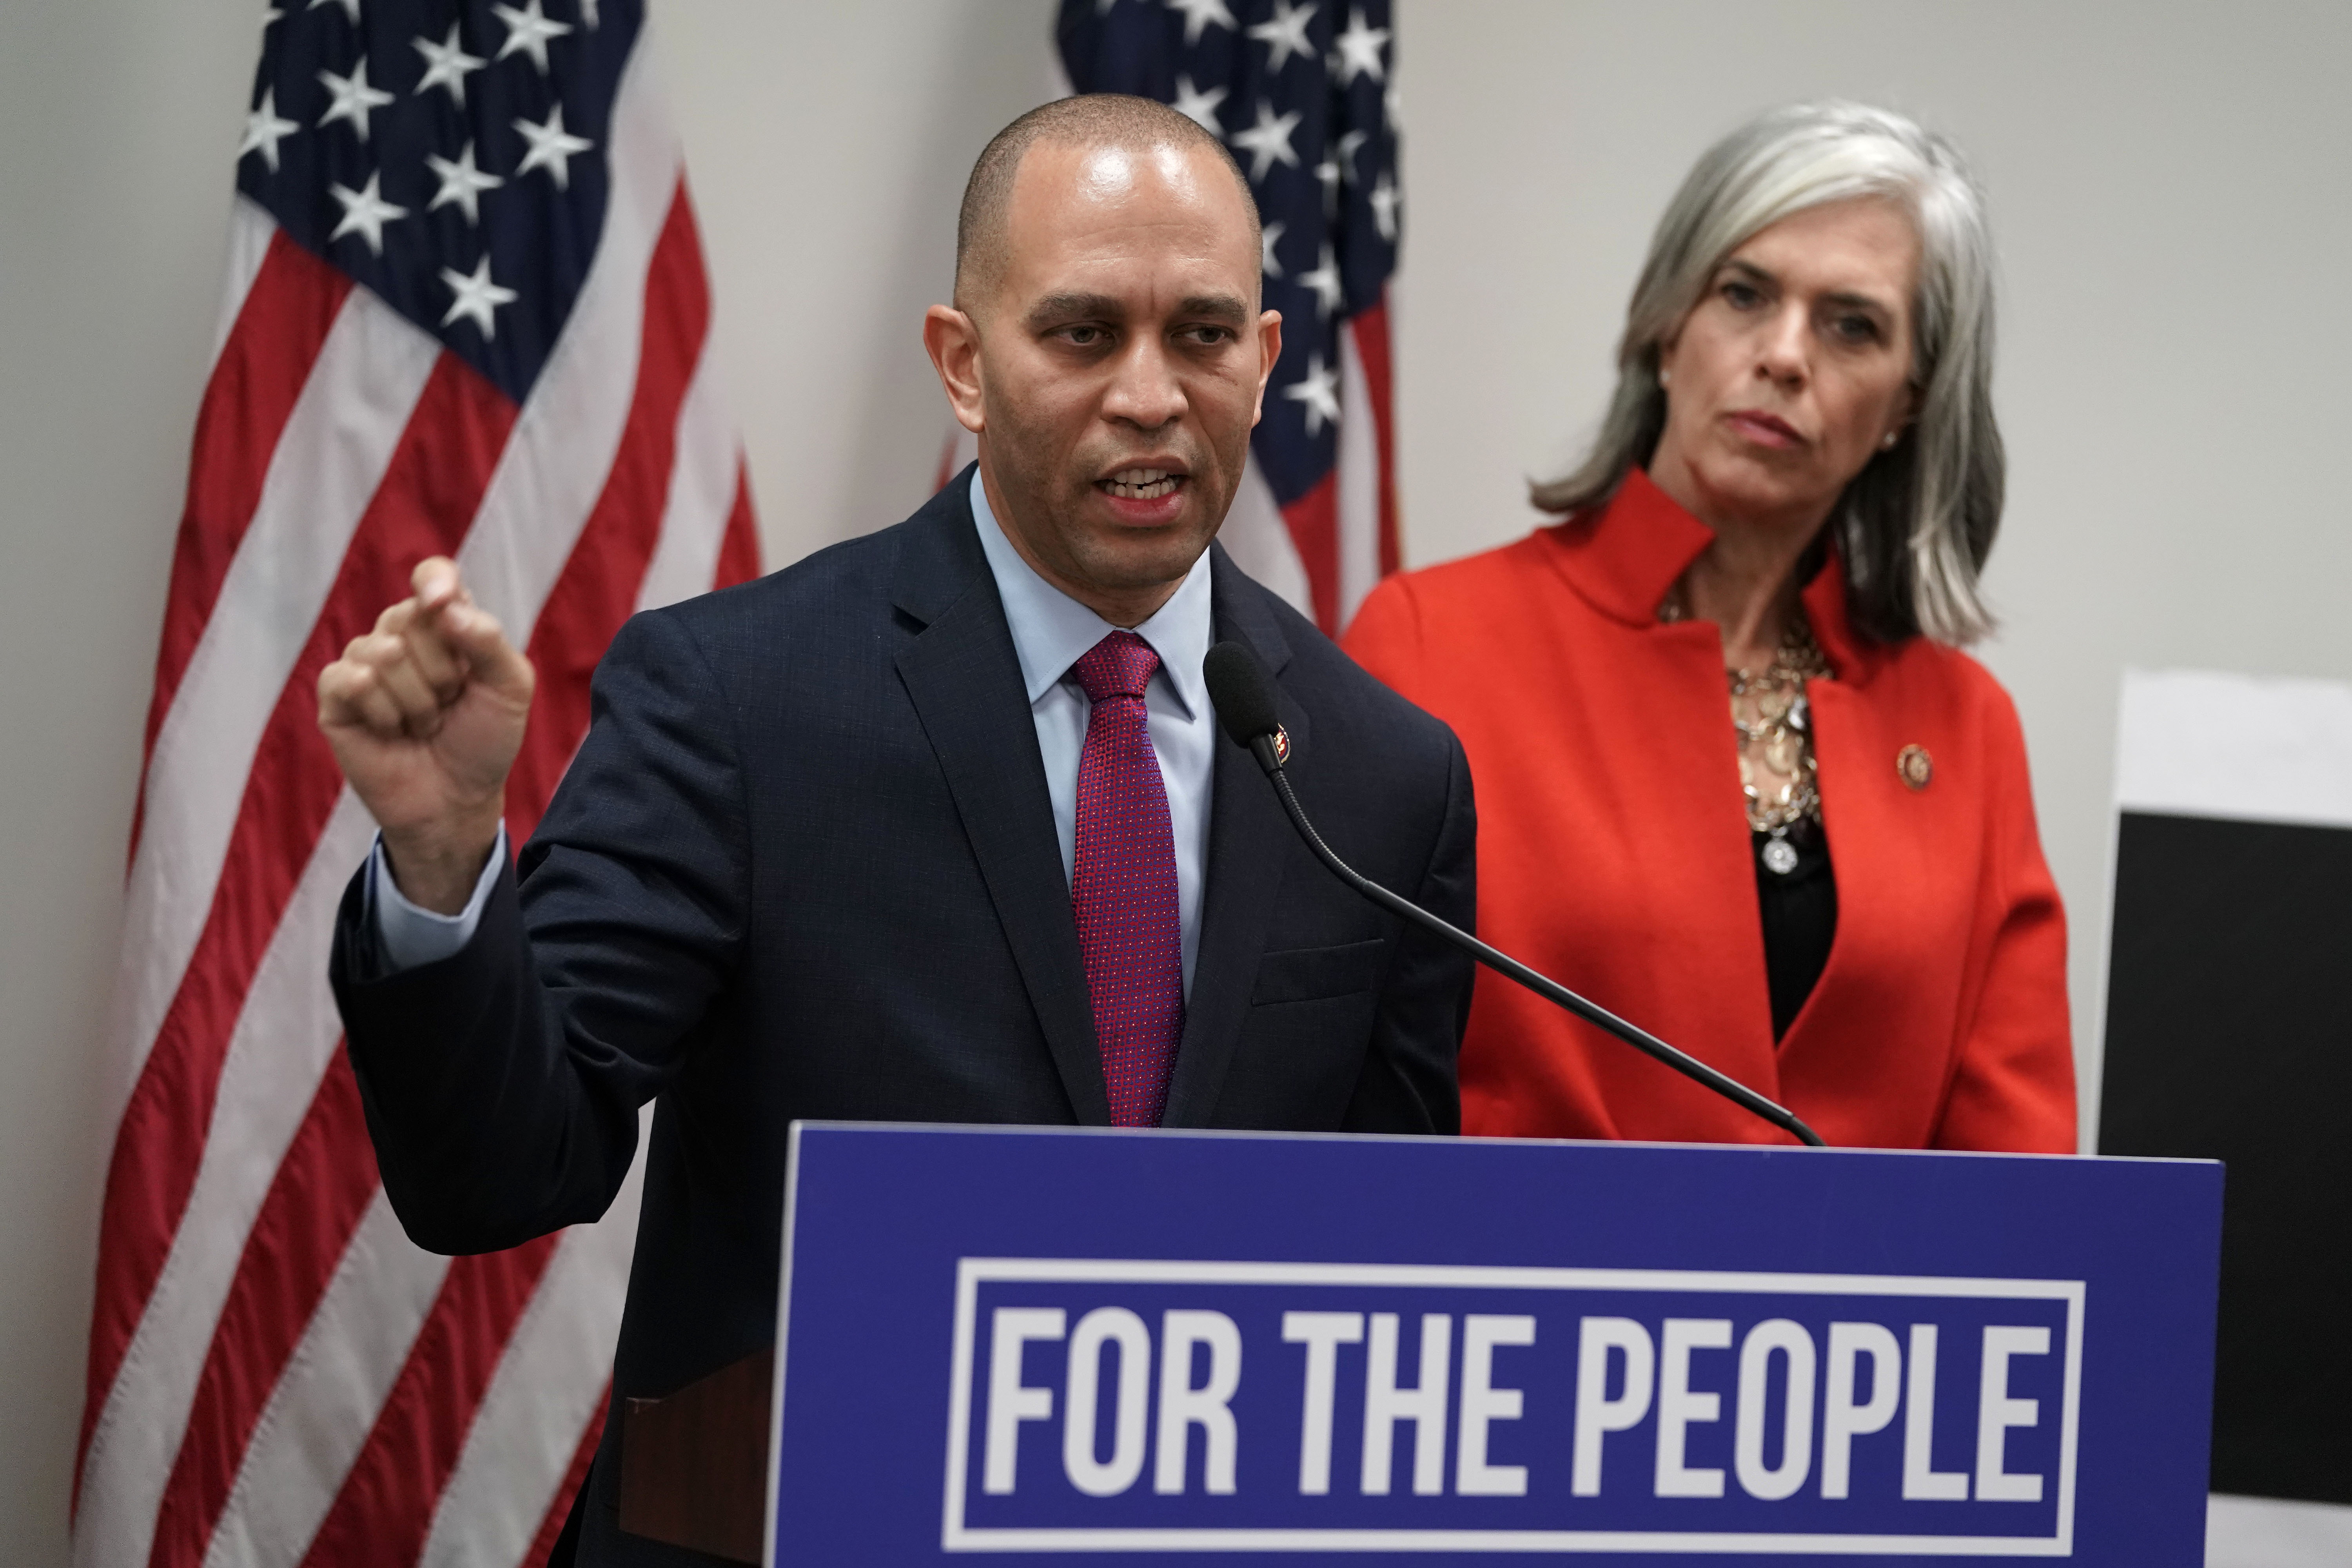 WASHINGTON, DC - JANUARY 09: U.S. House Democratic Caucus Chairman Rep. Hakeem Jeffries (D-NY) speaks as House Democratic Caucus Vice Chair Katherine Clark (D-MA) listens during a news conference after a caucus meeting at the U.S. Capitol January 9, 2019 in Washington, DC. House Democrats gathered to discuss the Democratic agenda as the partial government shutdown enters day 19. (Photo by Alex Wong/Getty Images)